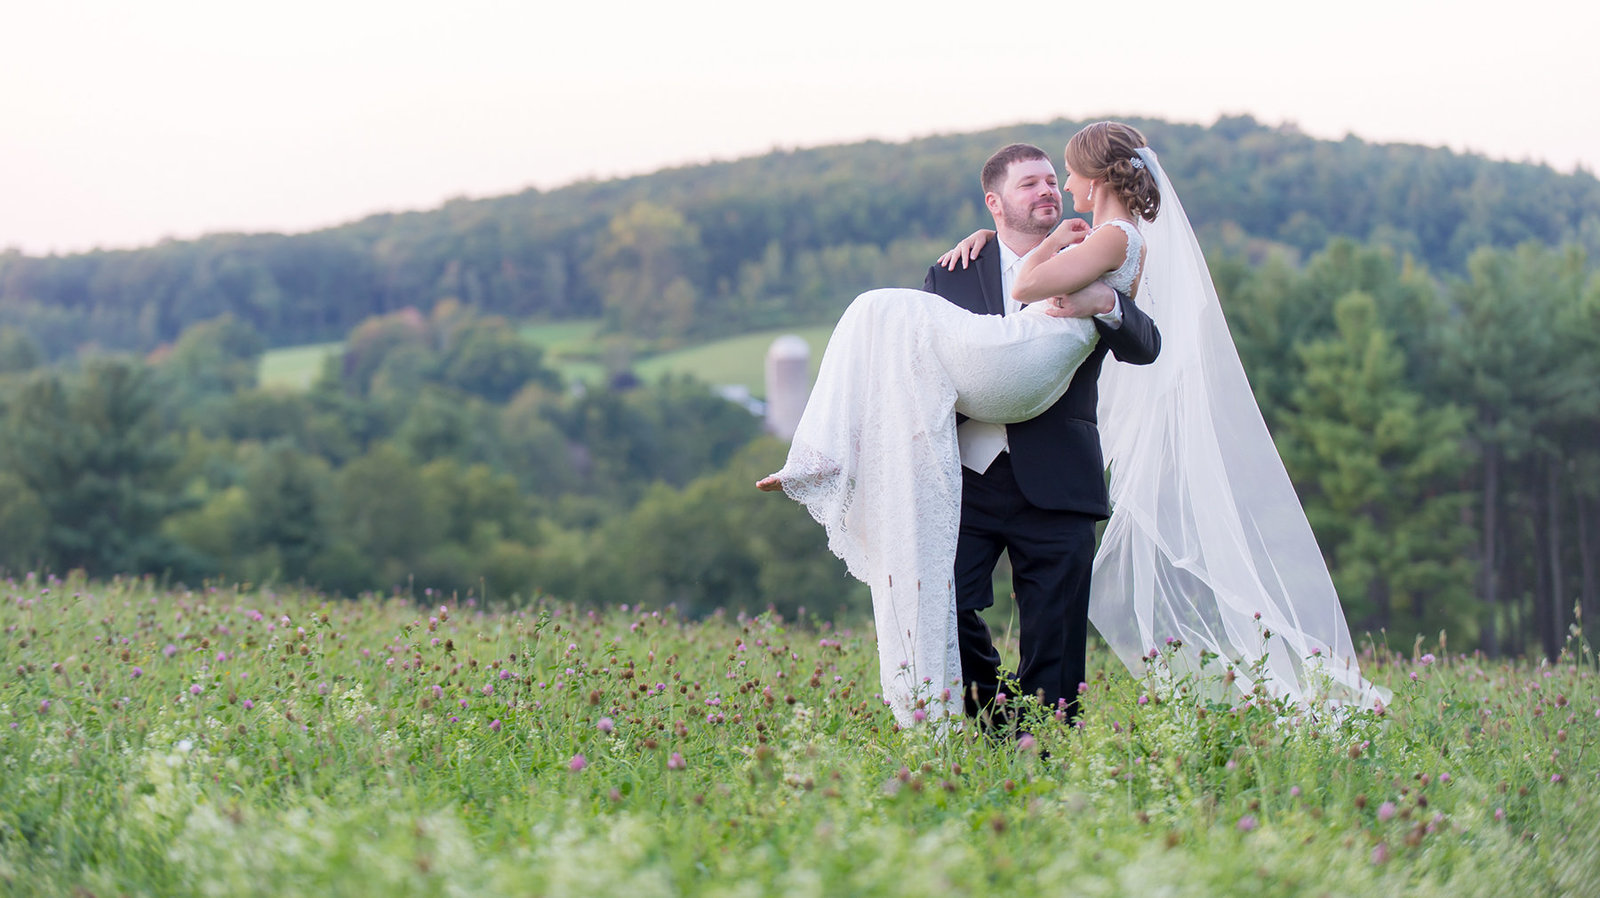 Artifact Images_Alicia & David Wedding_0905